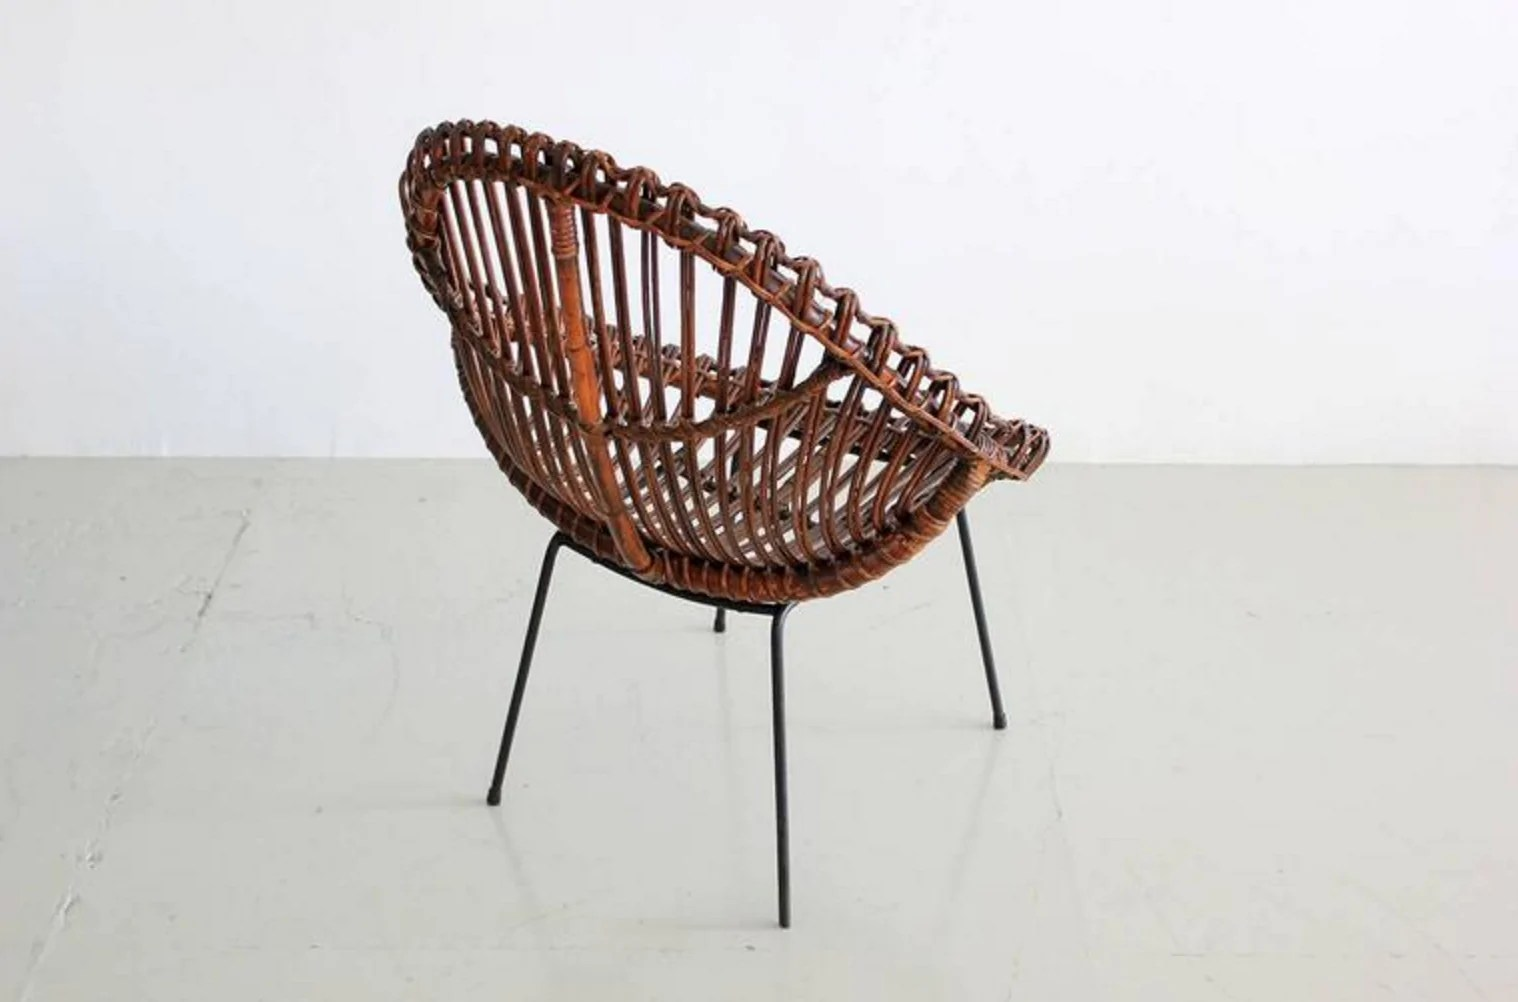 Rattan Chairs Sculptural Italian Rattan Chairs